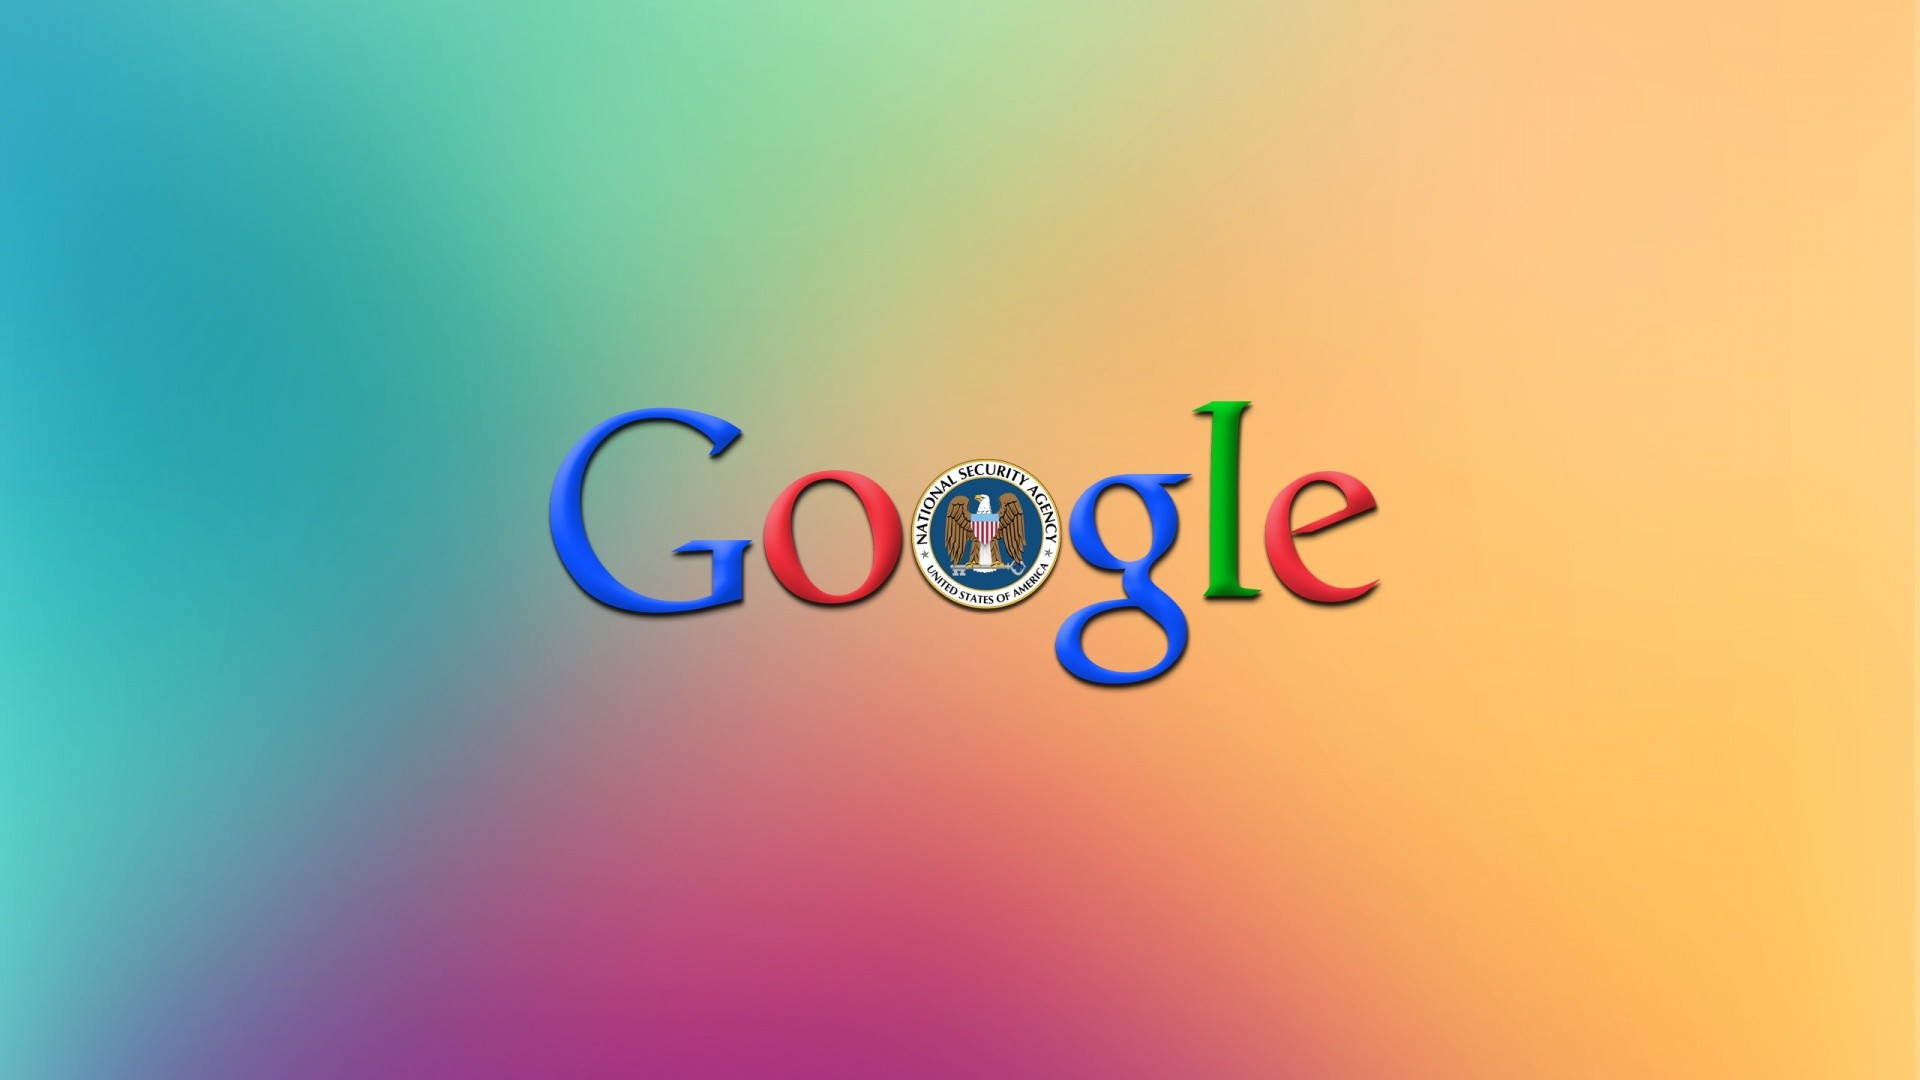 google backgrounds